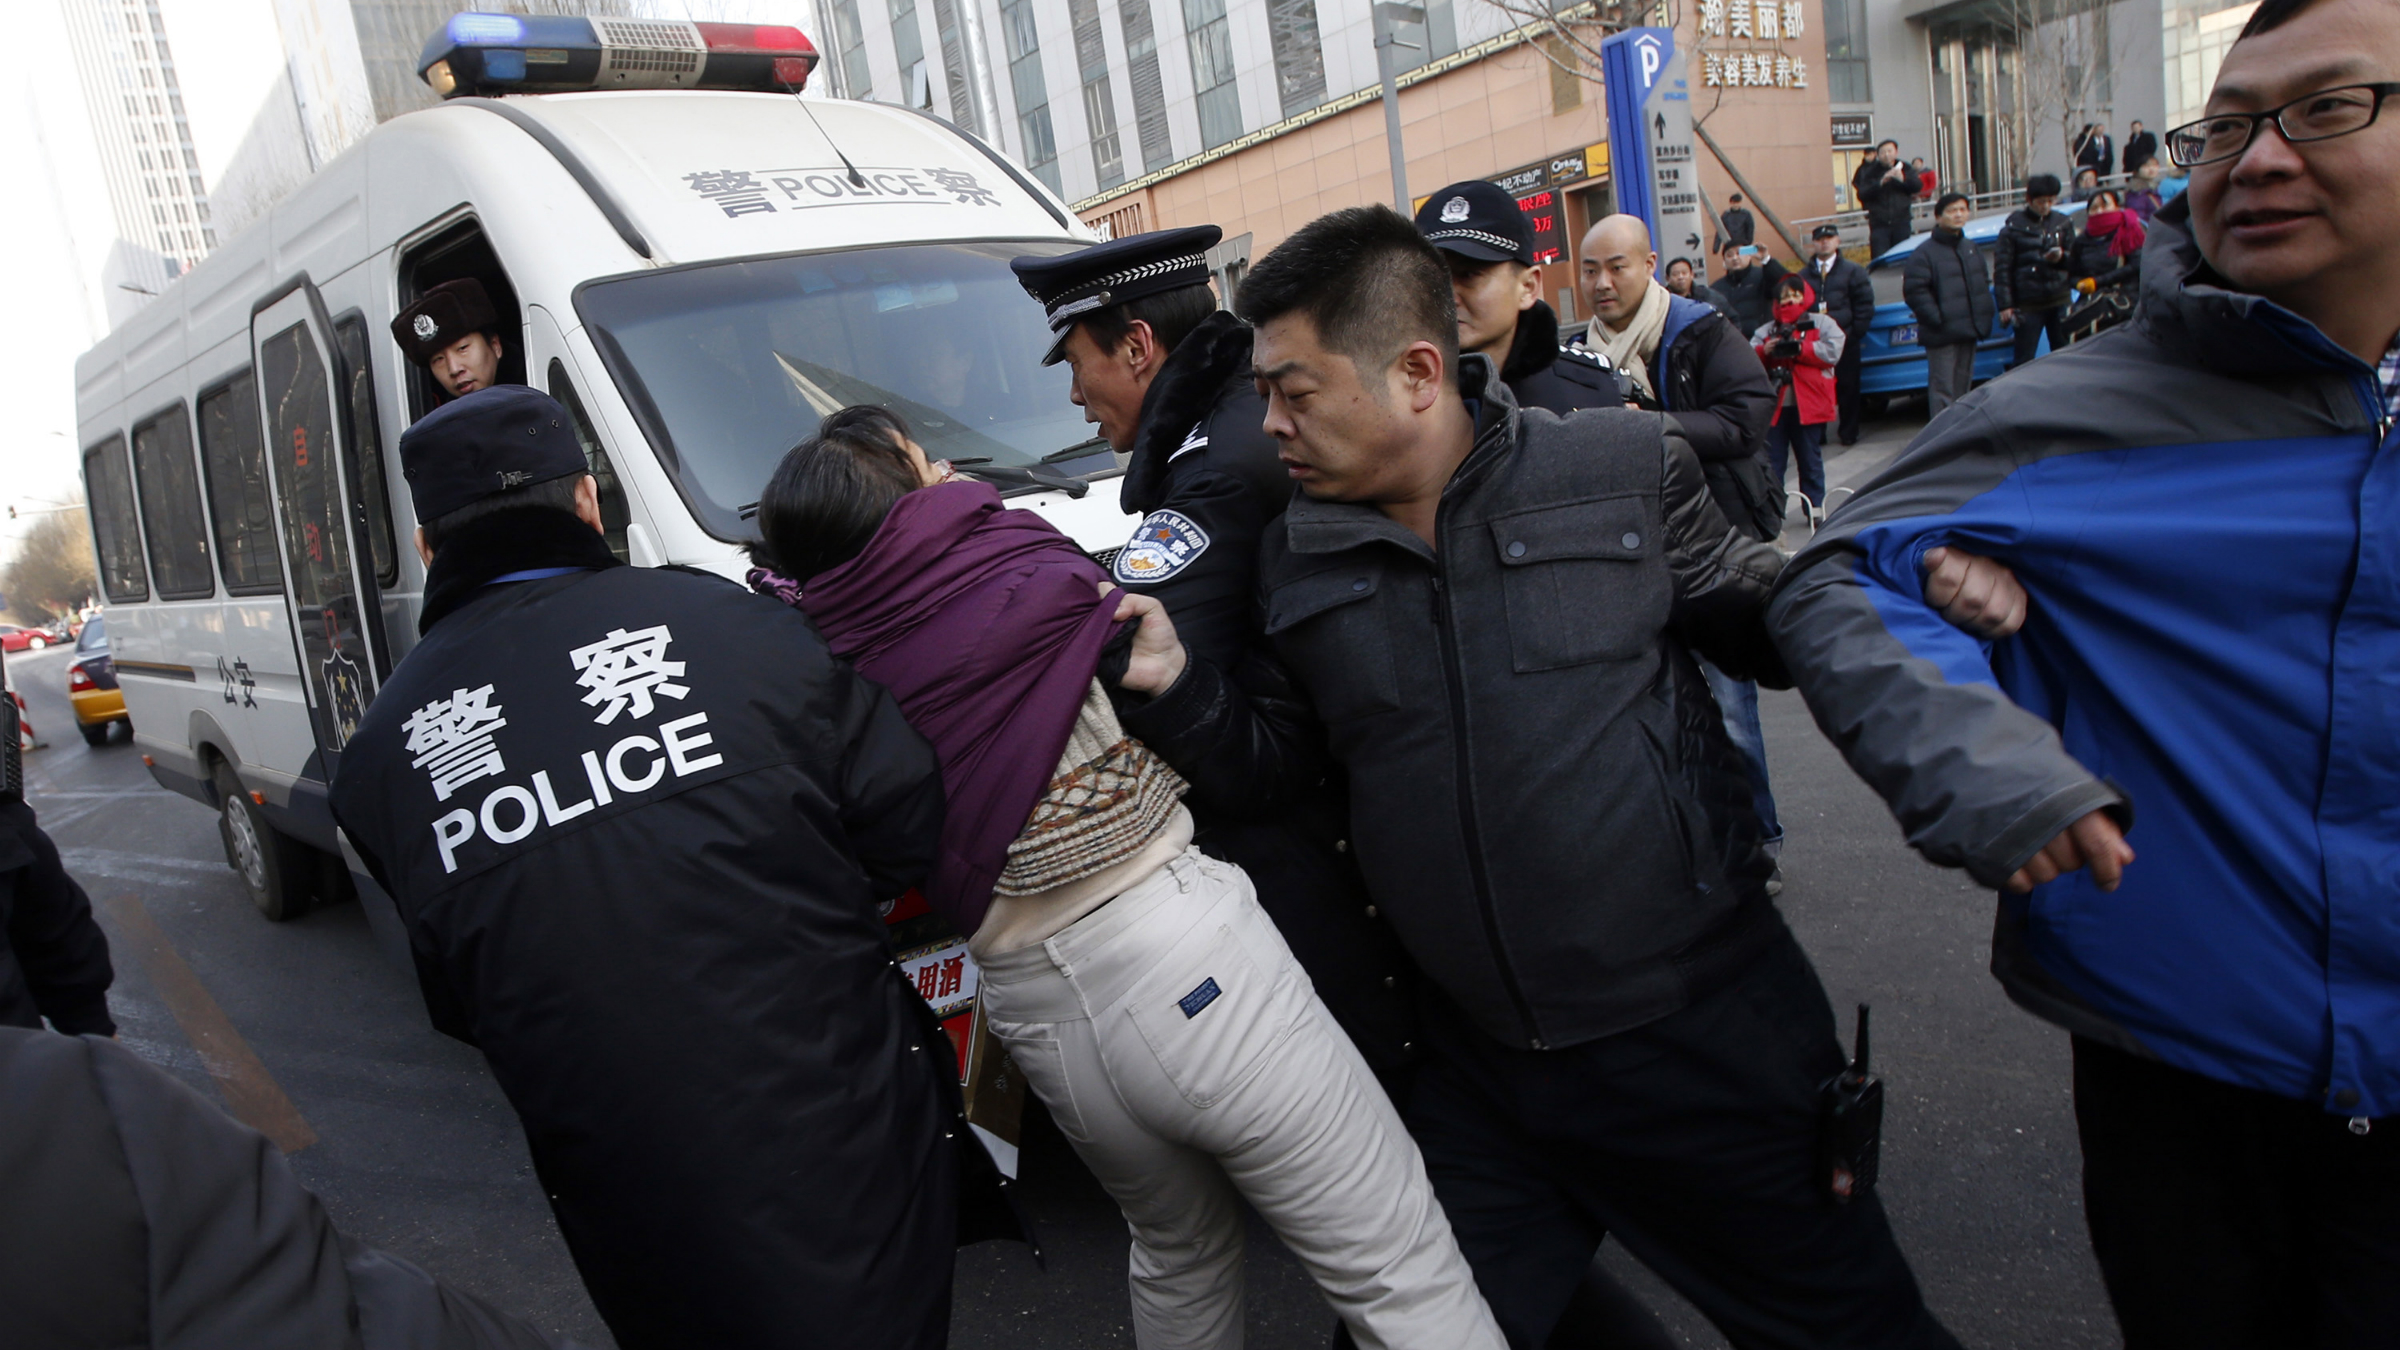 "Liu Chunxia, a supporter of Xu Zhiyong, one of China's most prominent rights advocates, is detained by policemen while she gathers with other supporters nearby a court where Xu's trial is being held in Beijing January 22, 2014. When dozens of activists unfurled banners across the country last March and April calling for officials to disclose their assets, they did so at the urging of one of China's most prominent rights advocates, Xu Zhiyong. Xu, 40, stands trial on Wednesday on a charge of ""gathering a crowd to disturb public order"" punishable by up to five years in prison. His case will almost certainly spark fresh criticism from Western governments over Beijing's crackdown on dissent. REUTERS/Kim Kyung-Hoon"